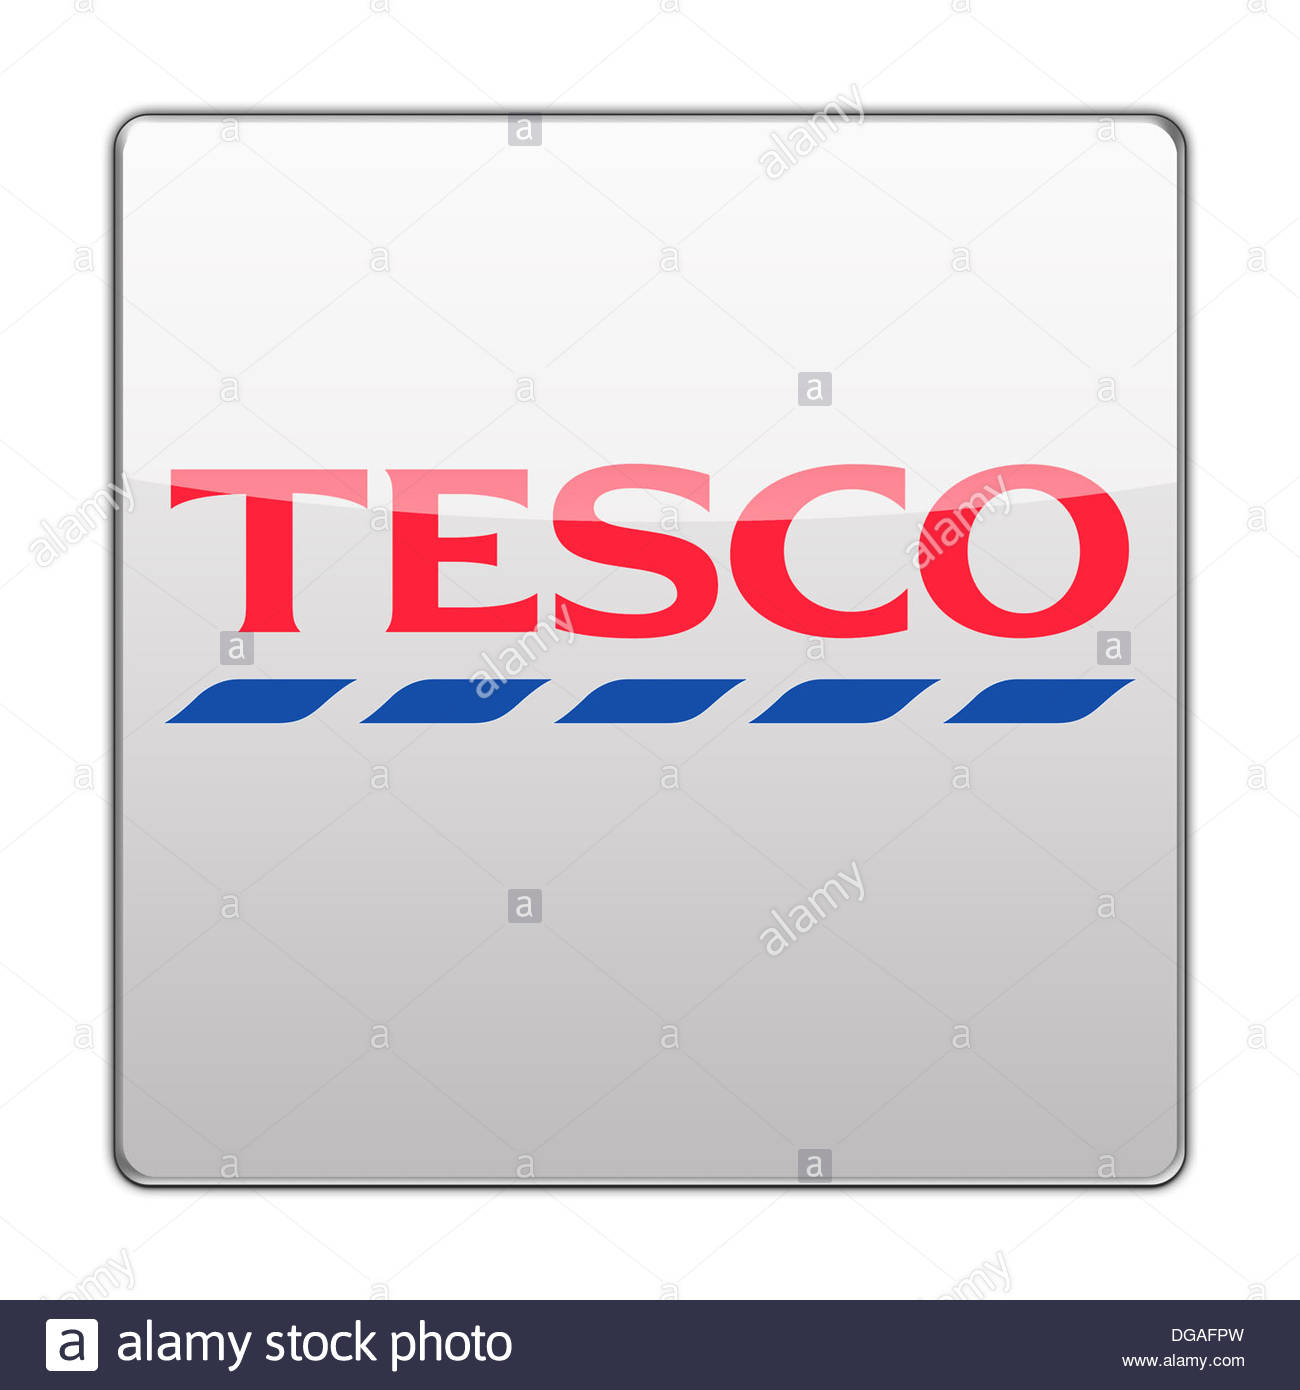 Tesco icon logo button app flag Stock Photo: 61697521 - Alamy